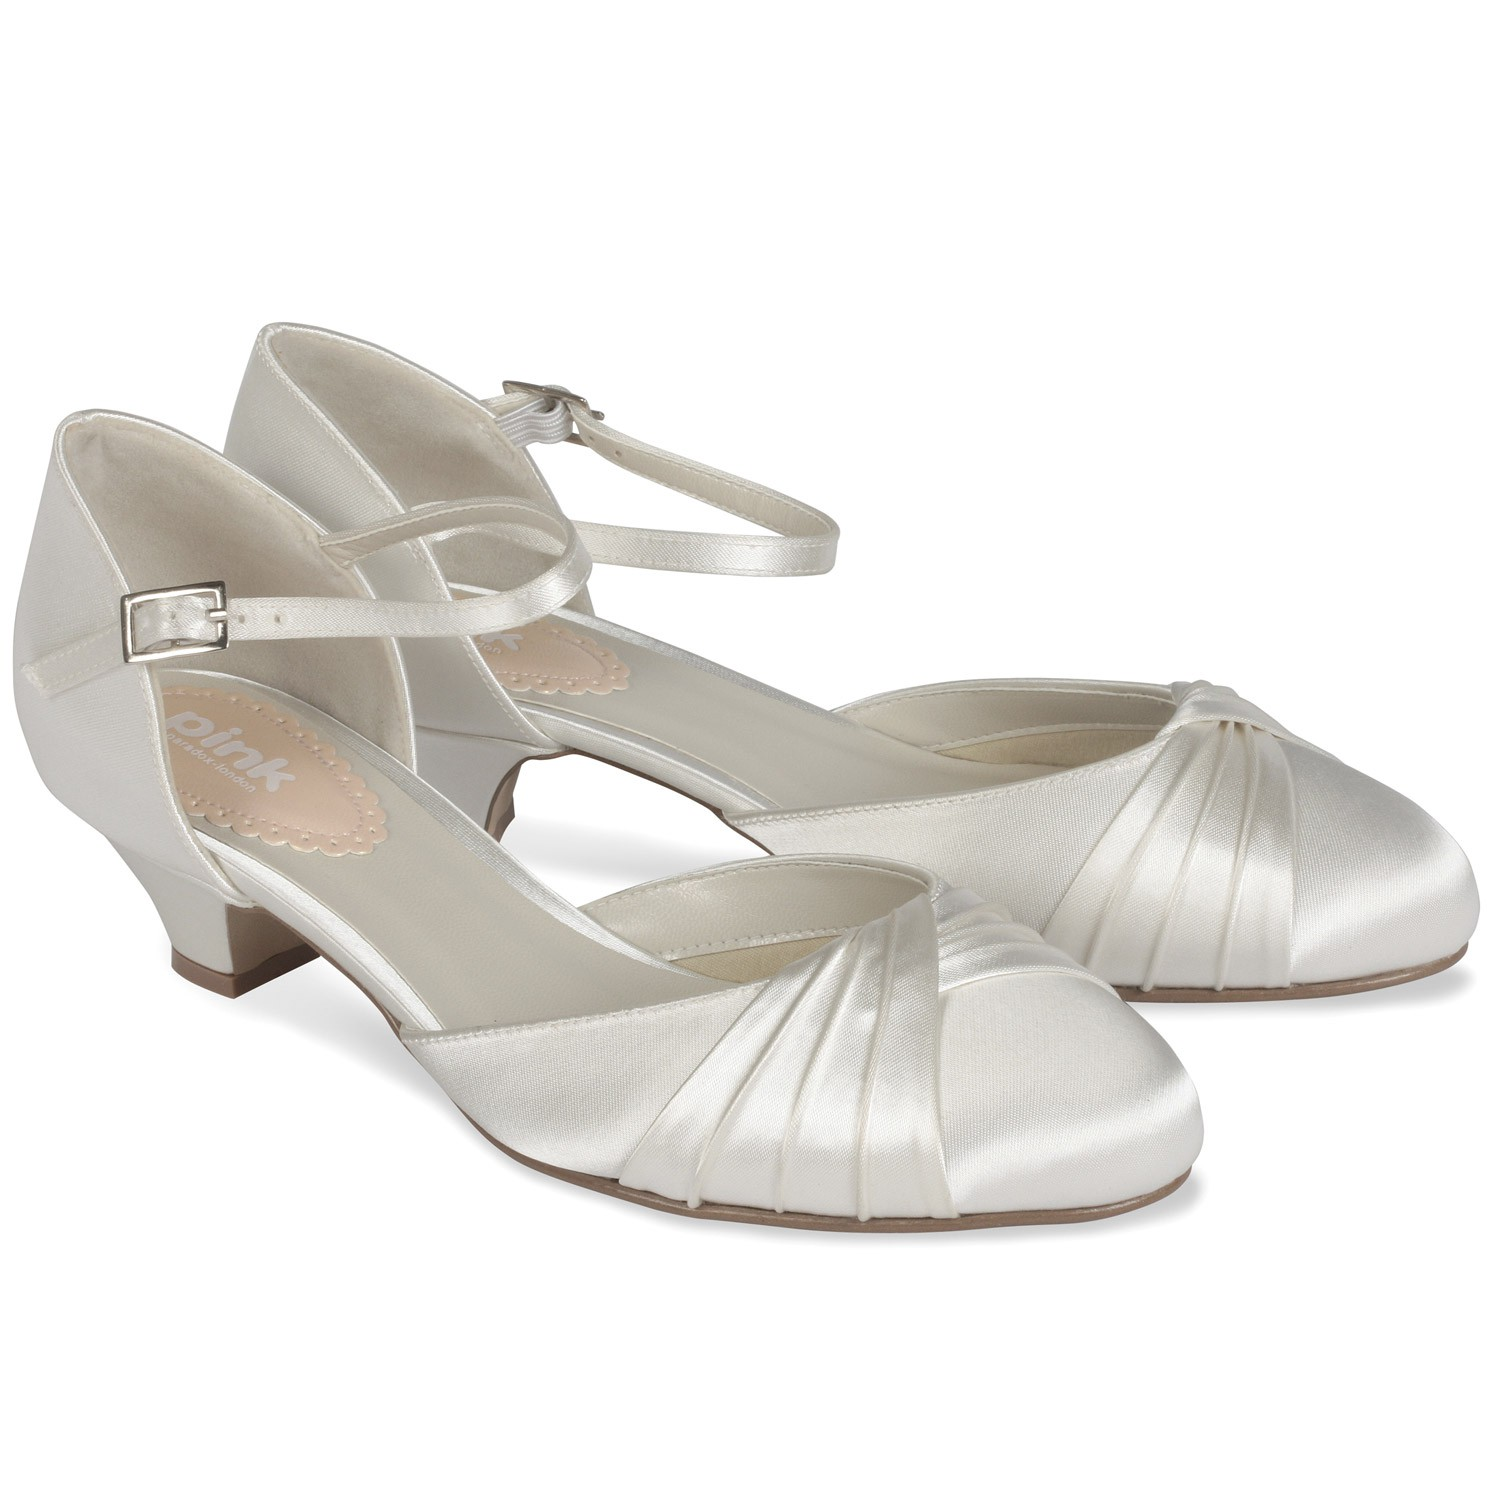 Chaussures de mariage Casual femme